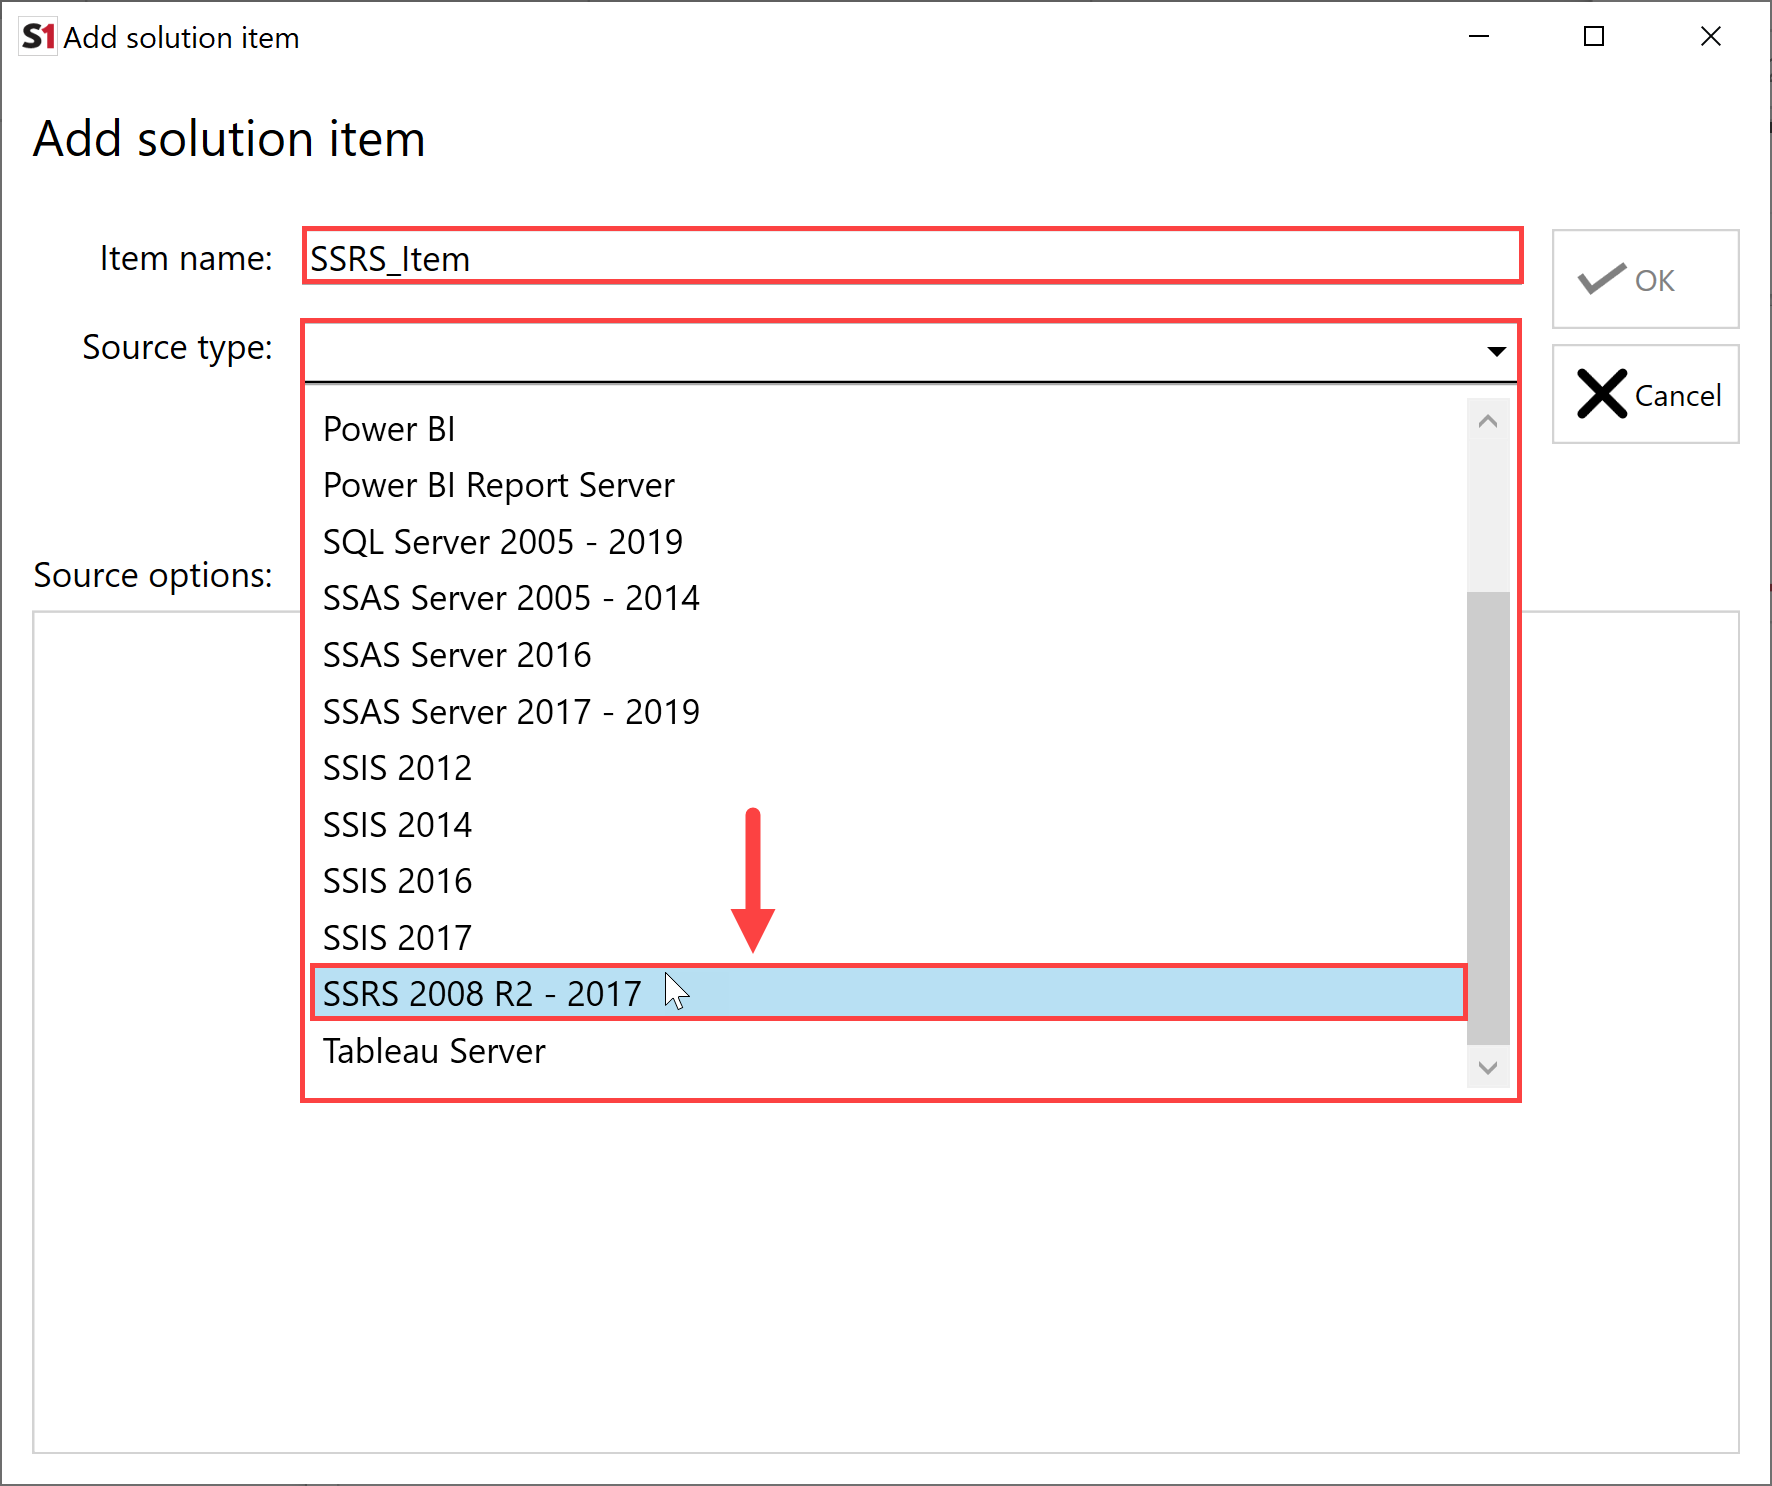 SentryOne Document Add Solution Item SSRS 2008 R2-2017